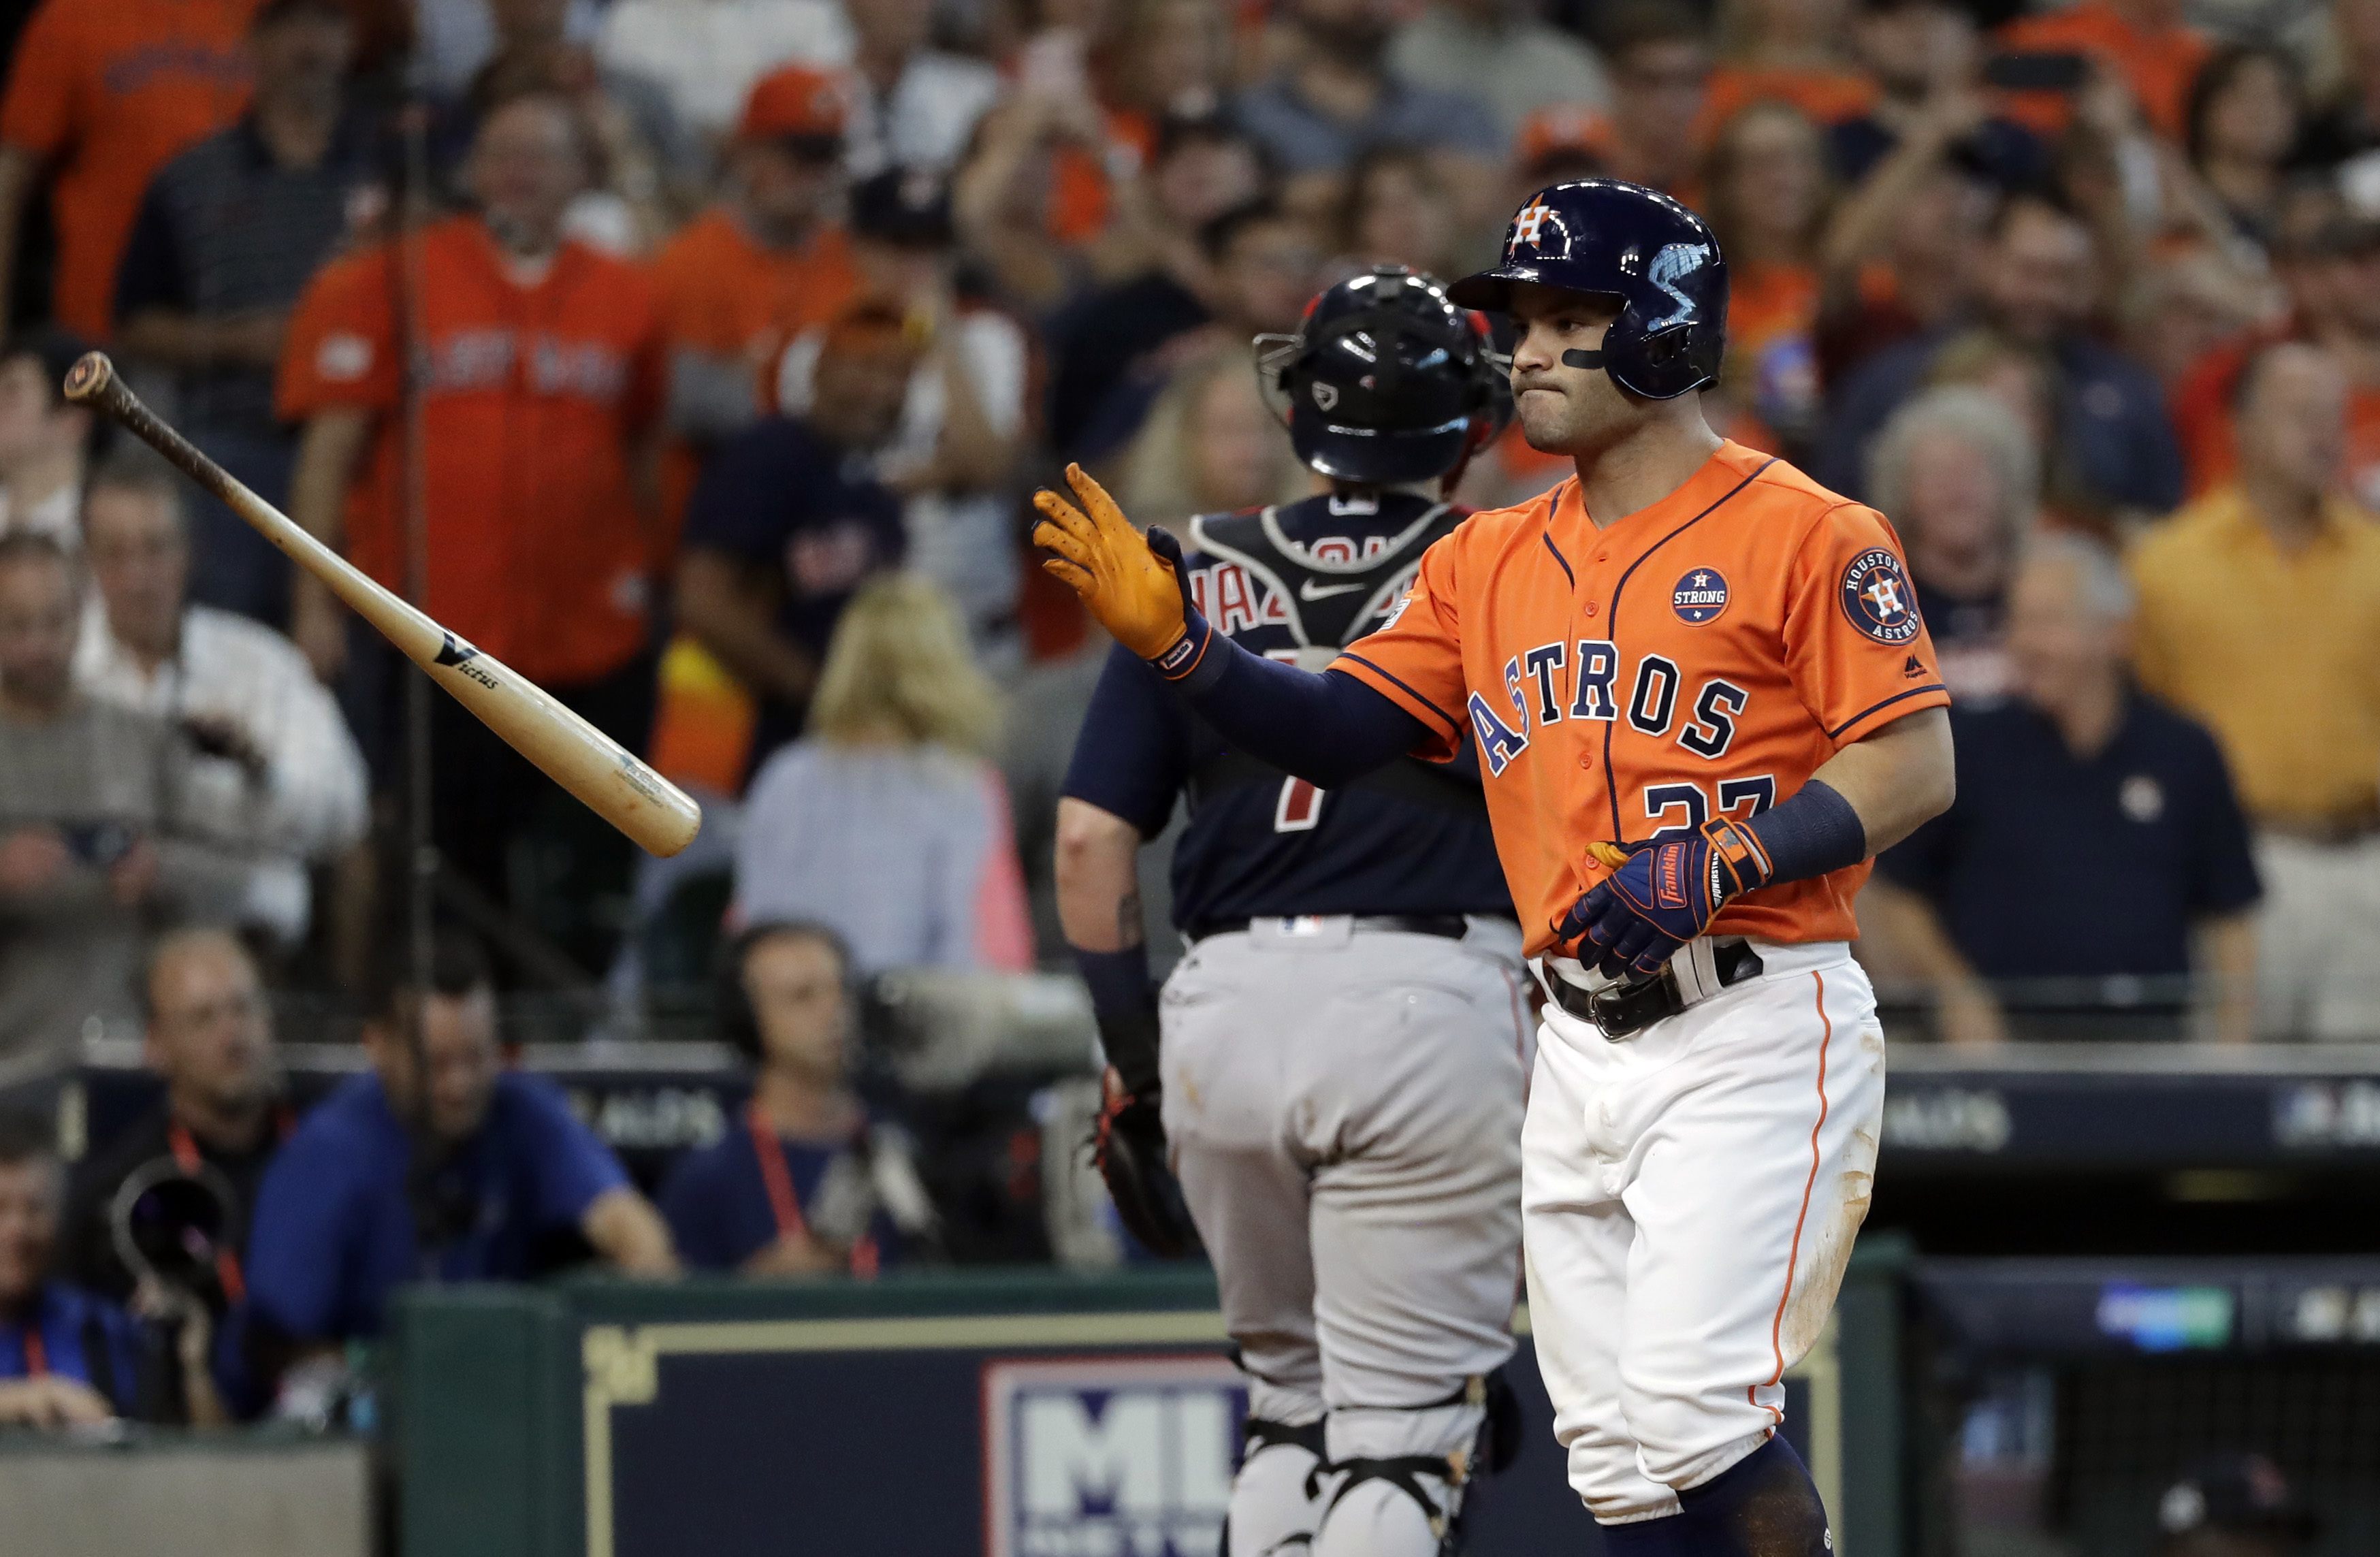 <div class='meta'><div class='origin-logo' data-origin='AP'></div><span class='caption-text' data-credit='David J. Phillip'>Houston Astros' Jose Altuve (27) tosses his bat after he struck out with the bases loaded during the seventh inning in Game 2.</span></div>